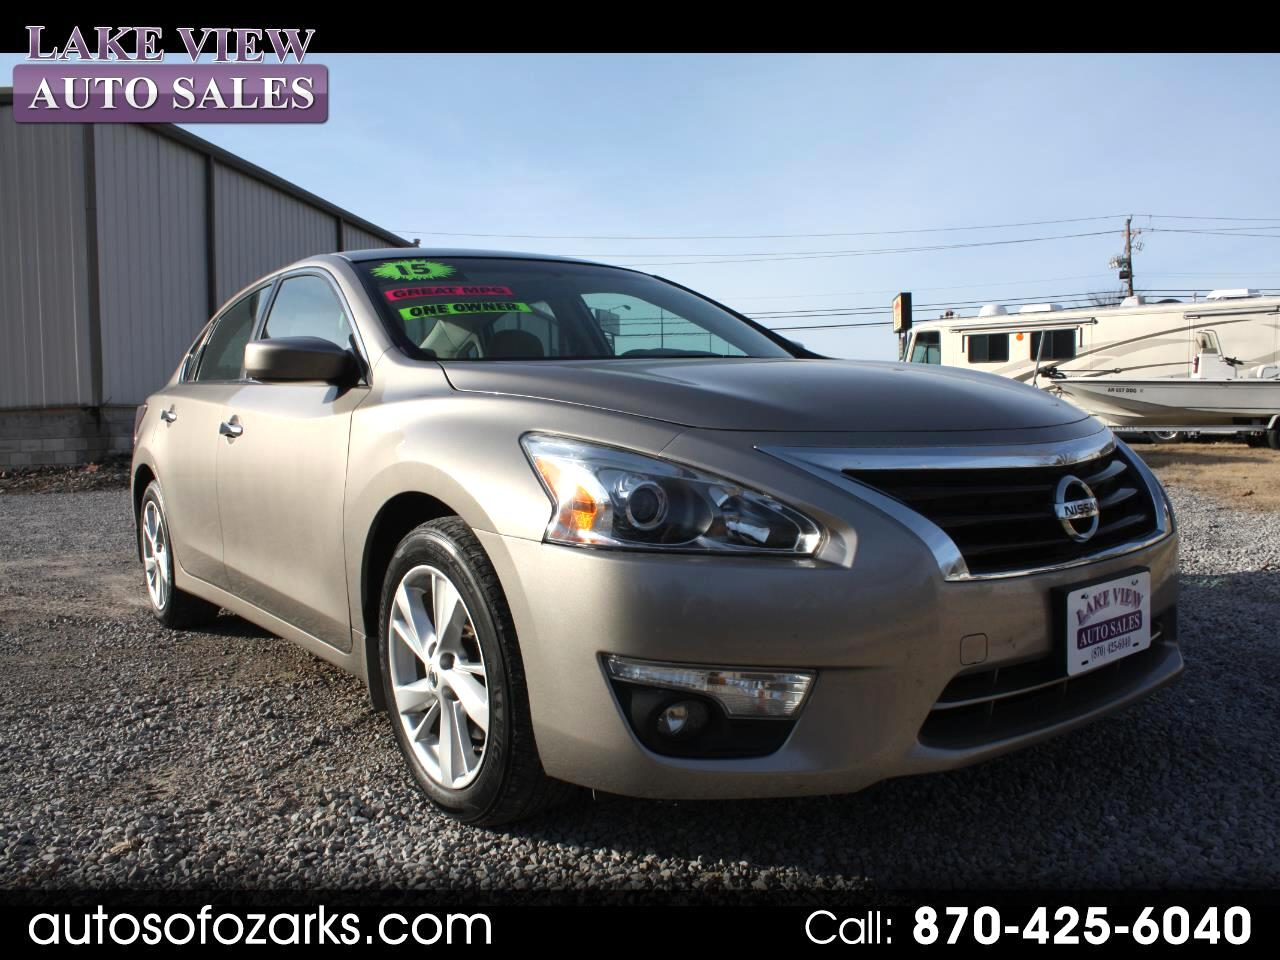 used 2015 nissan altima 2 5 sv for sale in mountain home ar 72653 lakeview auto sales. Black Bedroom Furniture Sets. Home Design Ideas